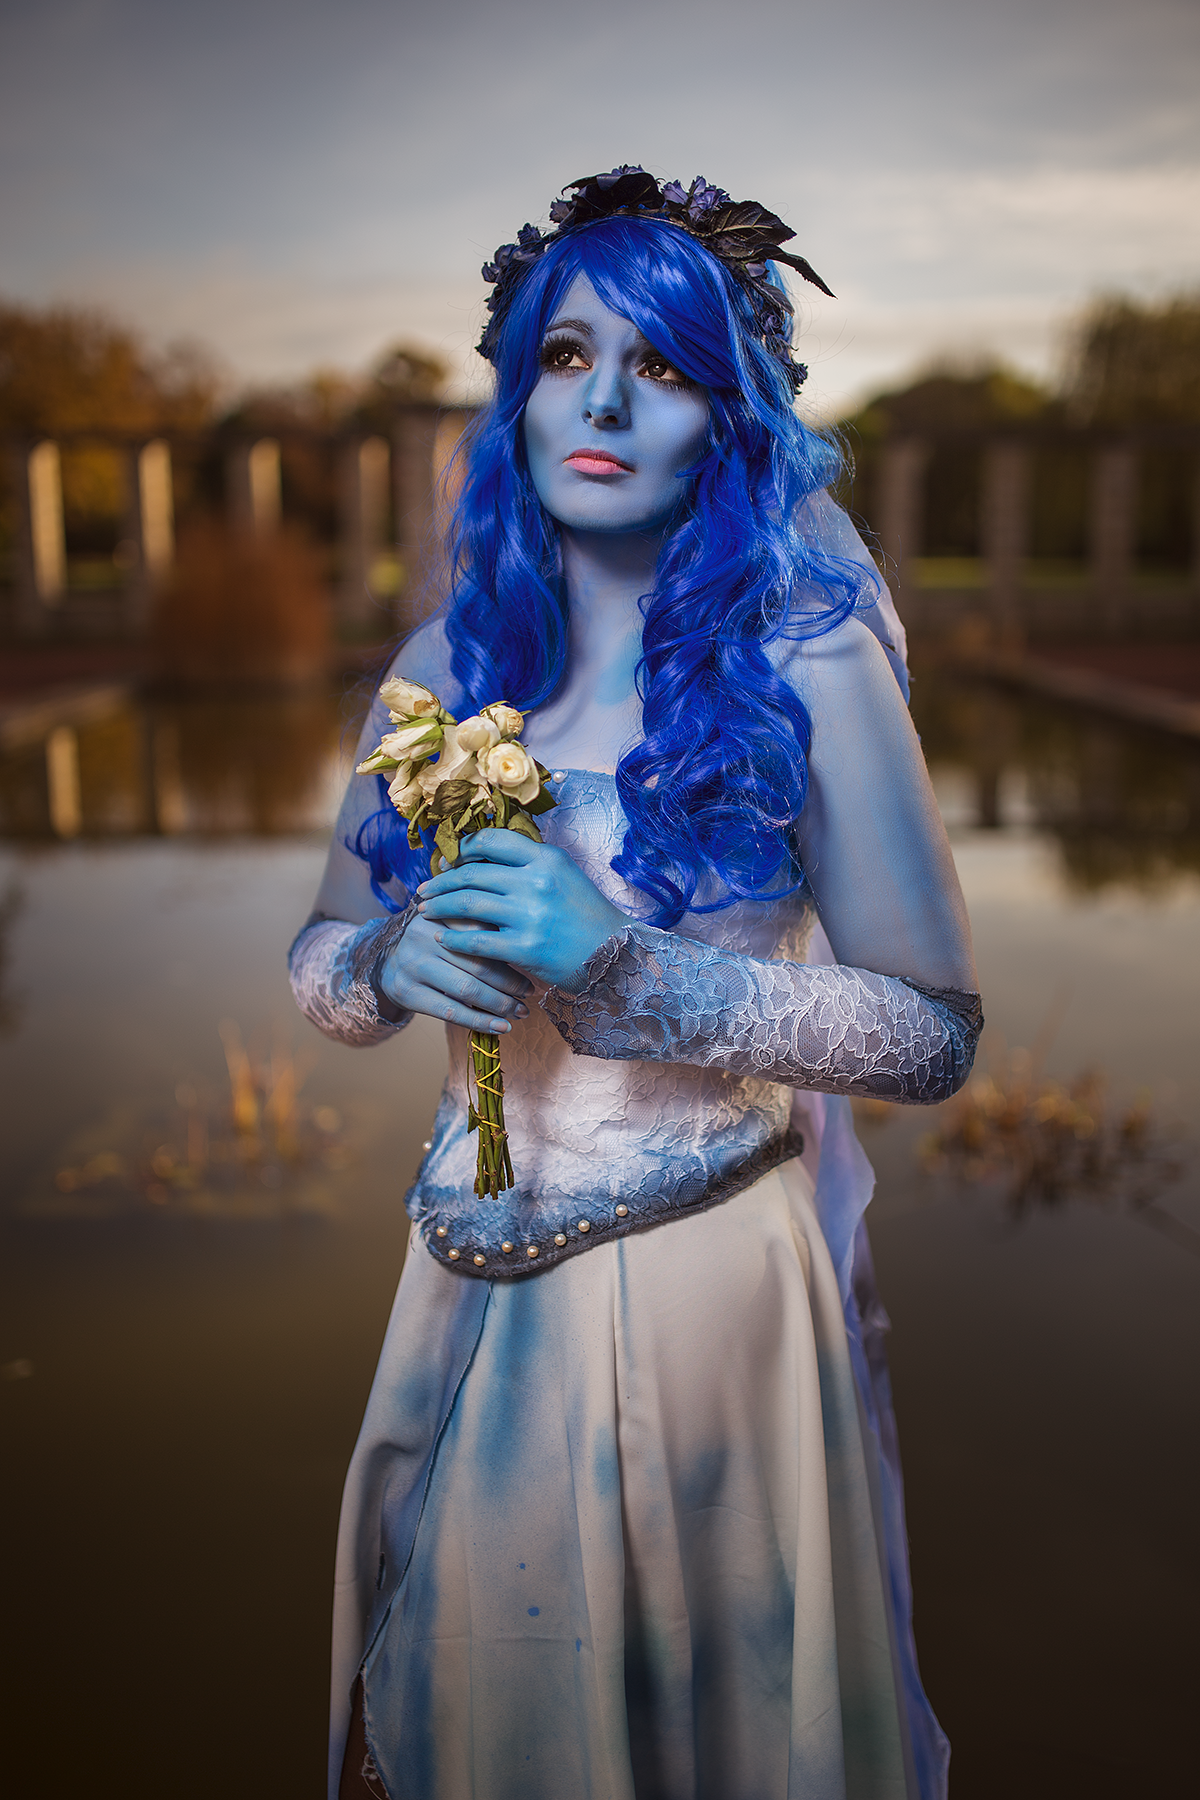 Corpse Bride Hochzeit Mit Einer Leiche Cosplay Worn And Made By Me Photo By Fotograf 13 Emily The